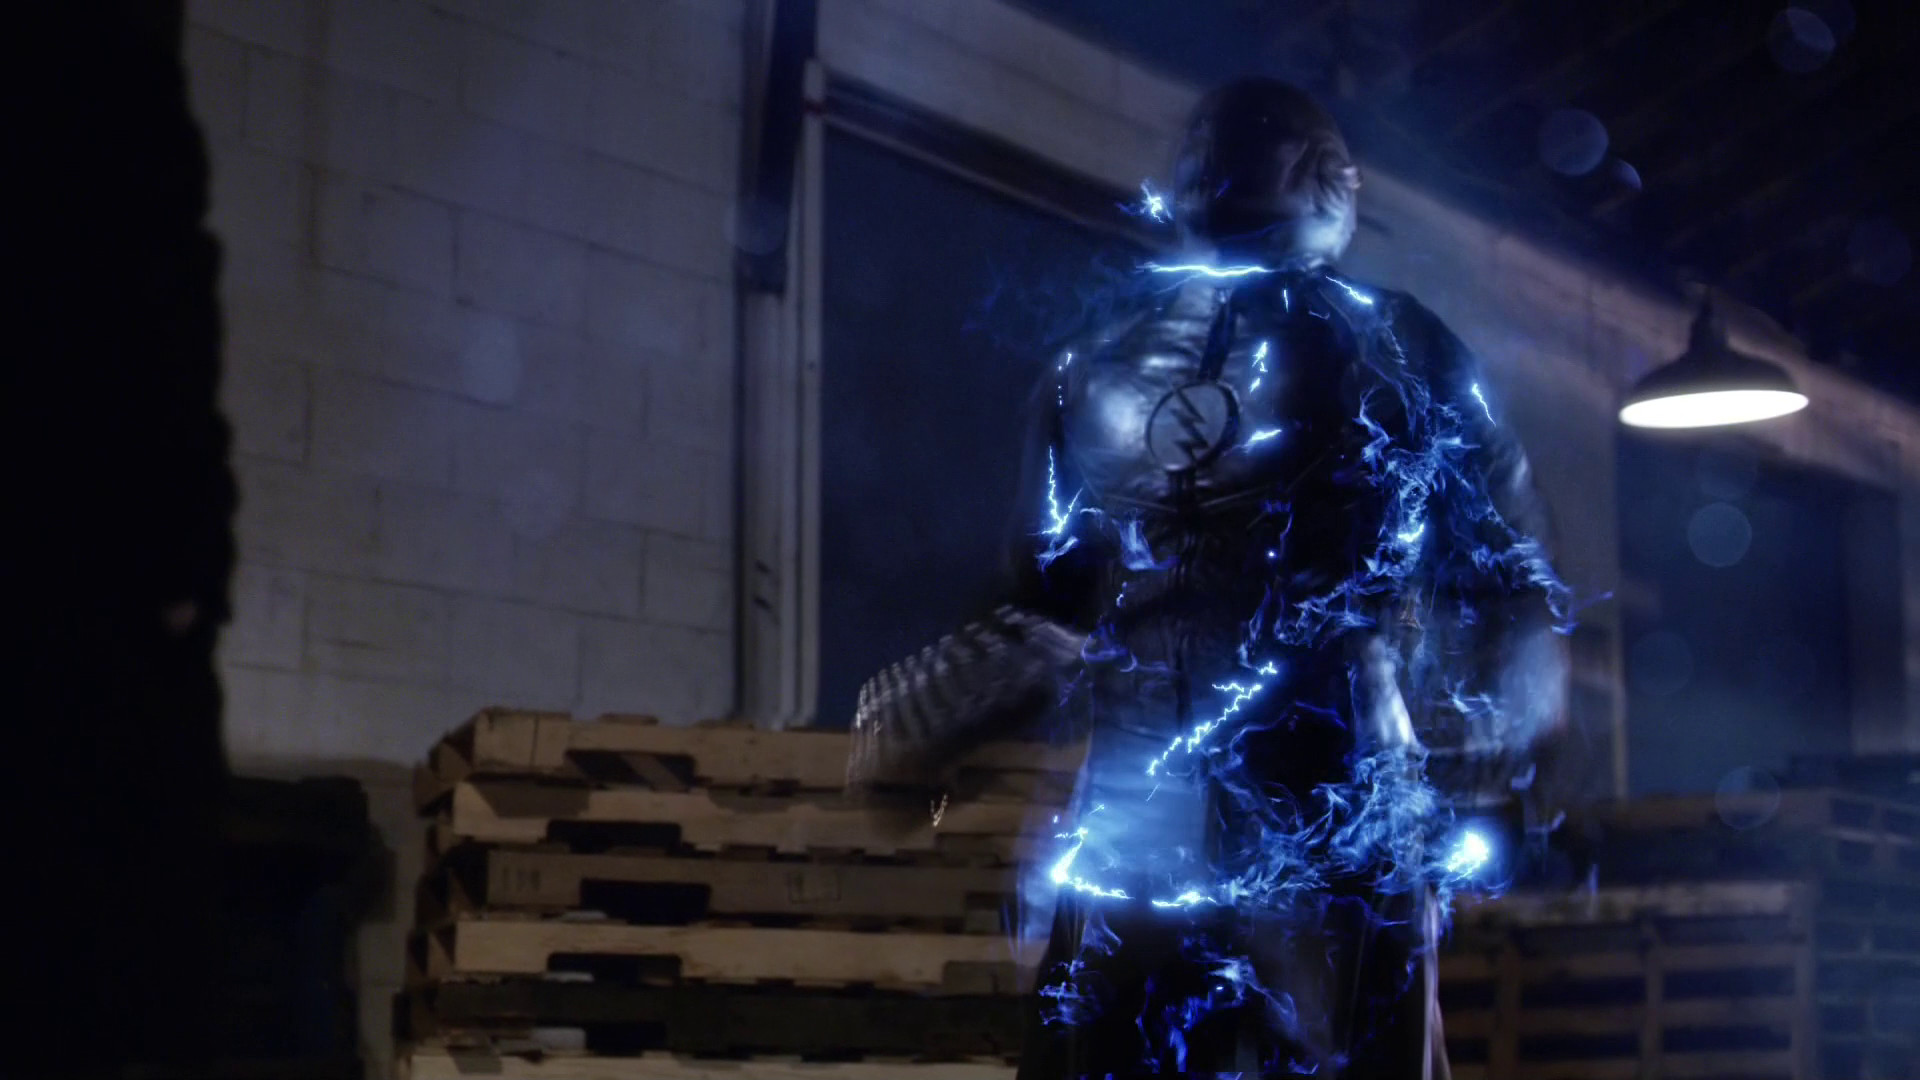 The Flash. Zoom shoots up with speed force